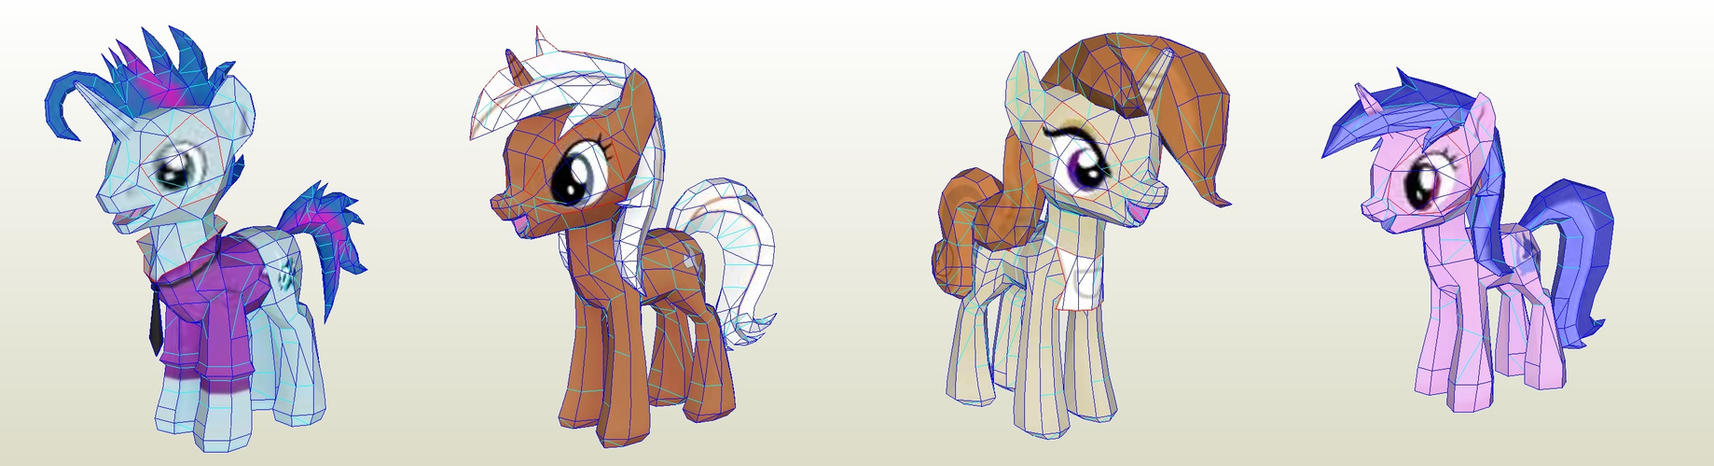 MLP Gameloft Class Acts by PapercraftKing